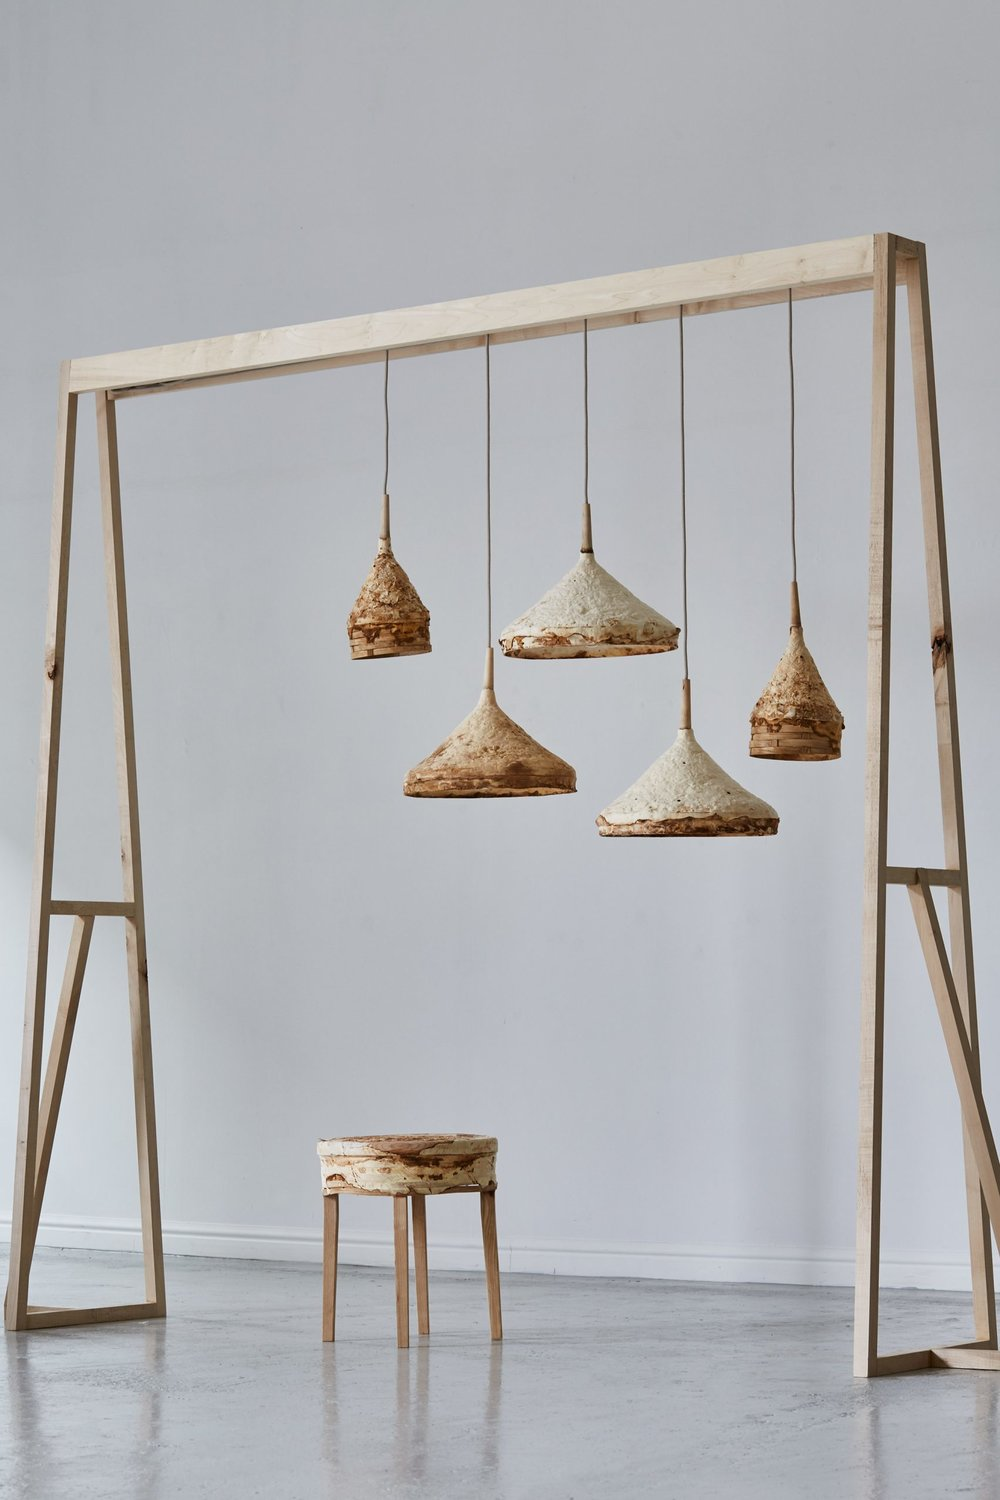 mycelium-timber-london-design-festival_dezeen_2364_col_17-1704x2556.jpg